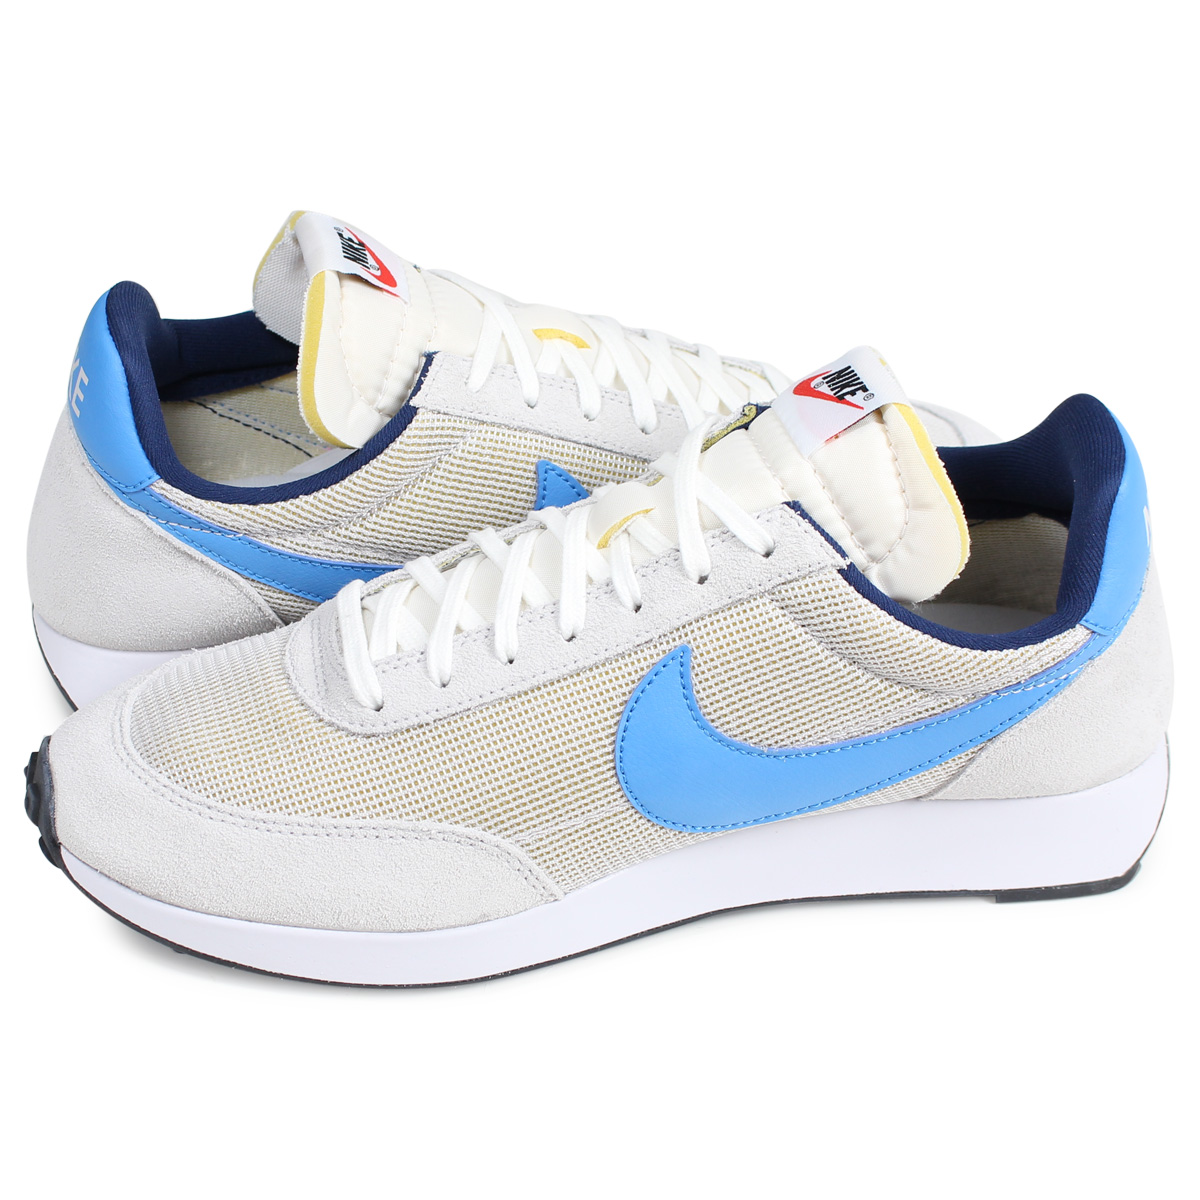 3ef99f4102 Nike NIKE air tale wind sneakers men gap Dis AIR TAILWIND 79 OG light gray  BQ5878-001 [the load planned additional arrival in reservation product 8/29  ...